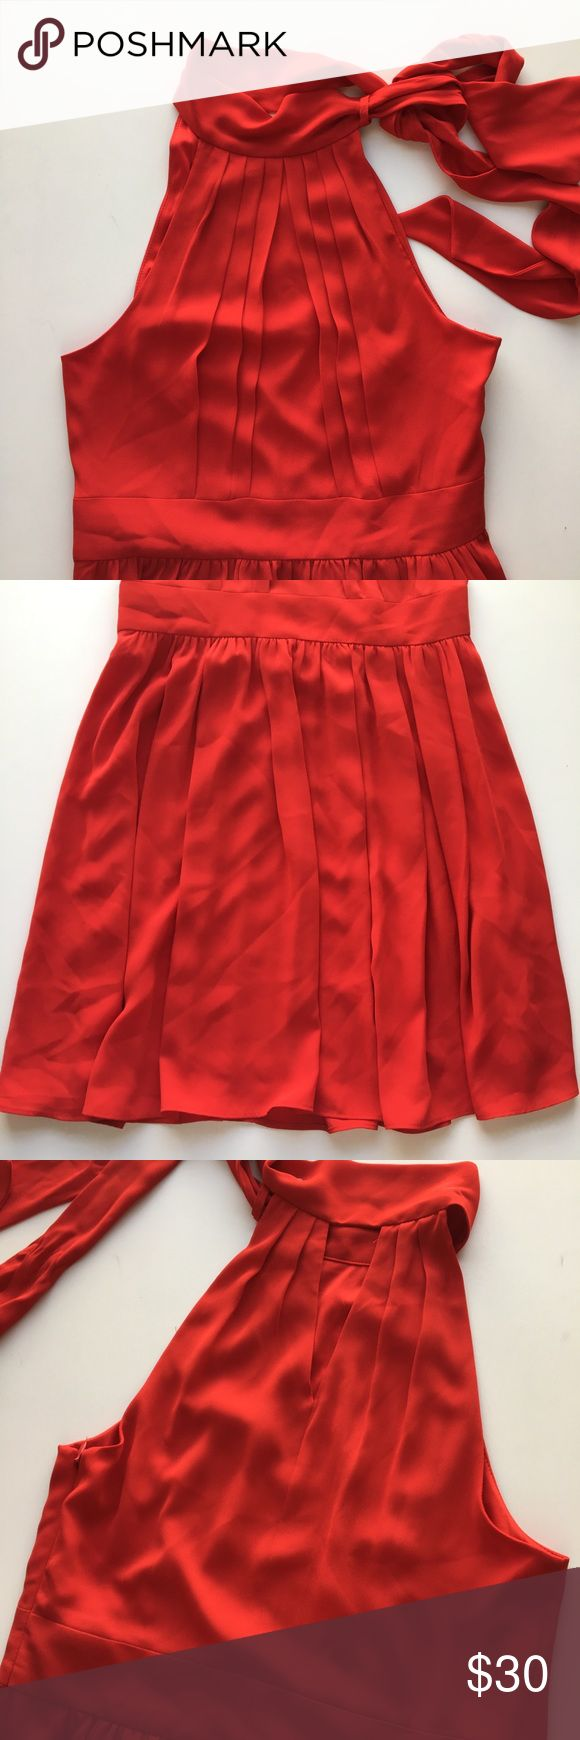 Express Ruby Red High-neck Dress Lovely tie-neck dress with gentle pleats and flowing skirt. Tight fitting waist and side-zipper. Made of 100% polyester. Only worn once and in great condition! Express Dresses Mini